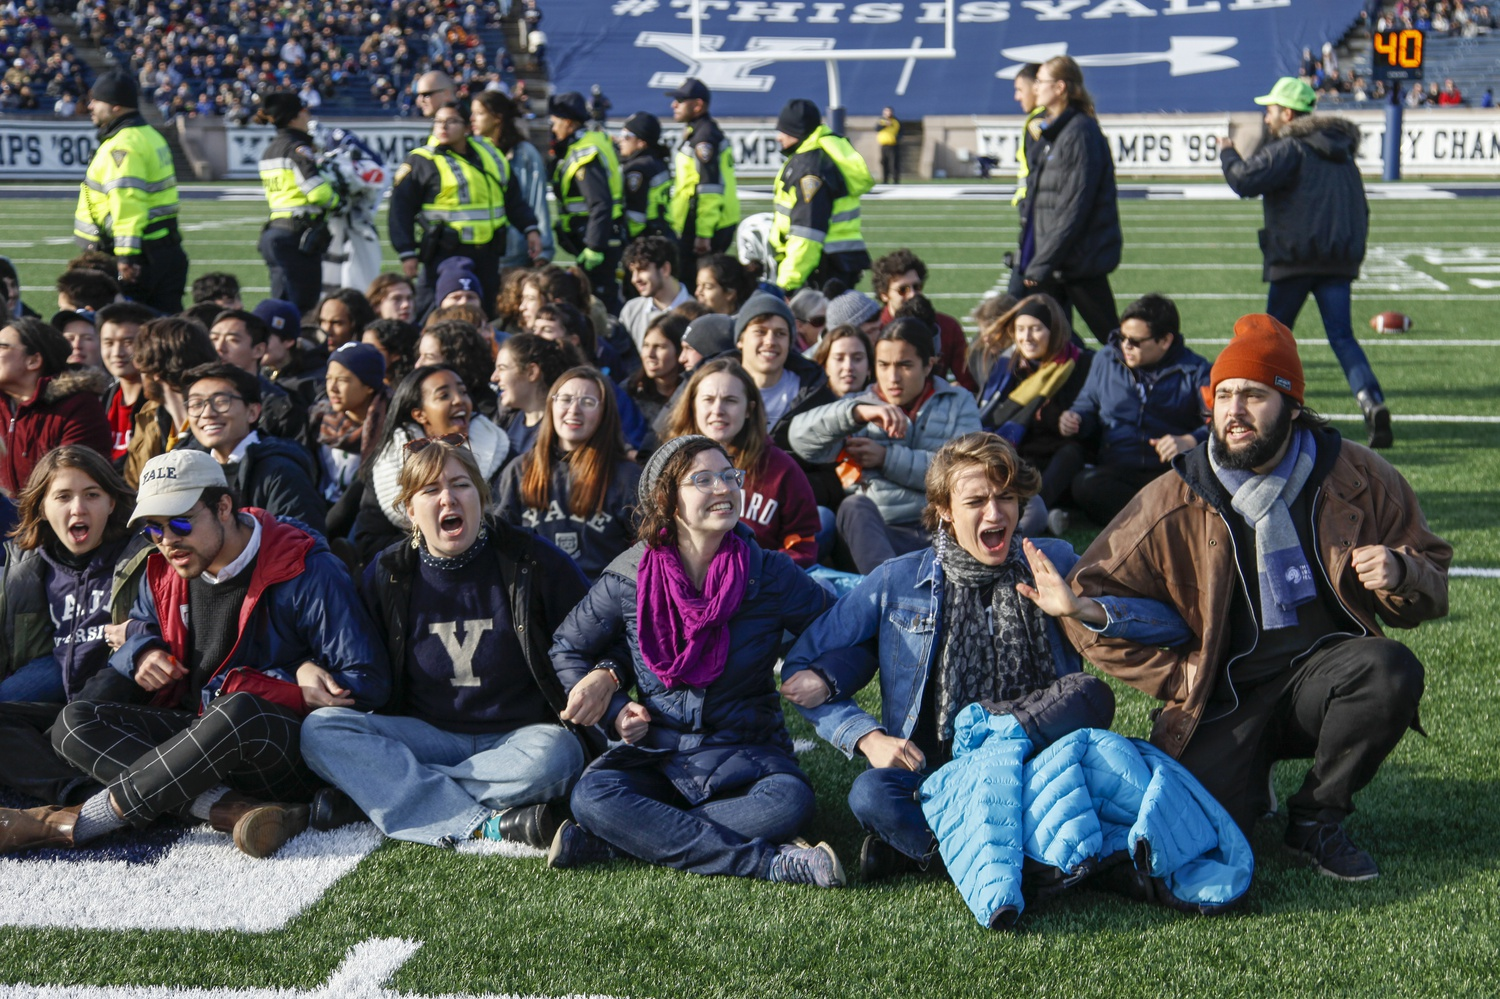 A Connecticut judge dismissed all charges Monday against the ten Harvard students and alumni who participated in the November divestment demonstration at the Harvard-Yale football game.